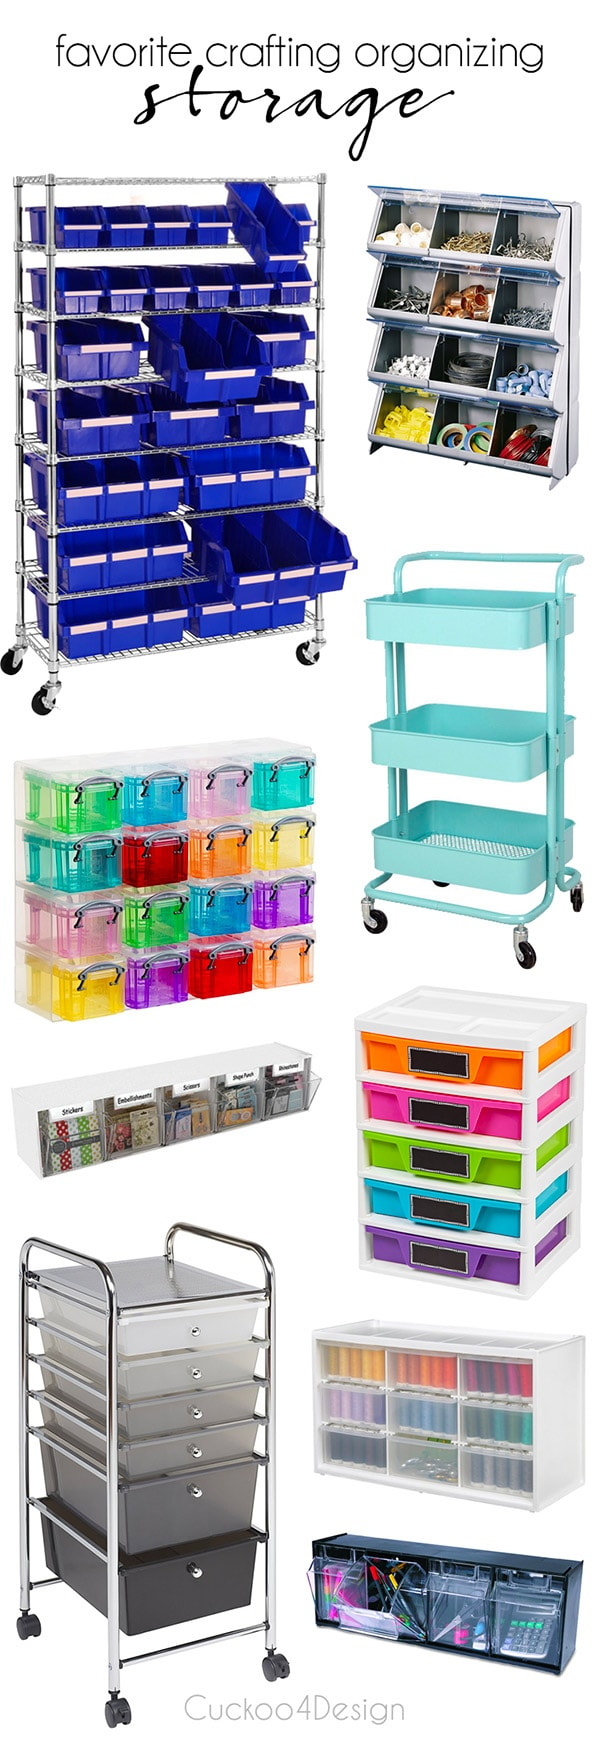 favorite crafting organizing storage | rolling craft cart | rolling storage | craft storage | craft organizing | slime organizing | slime storage | crafting storage | drawer storage | tilt bins | #craftstorage #slimestorage #crafting